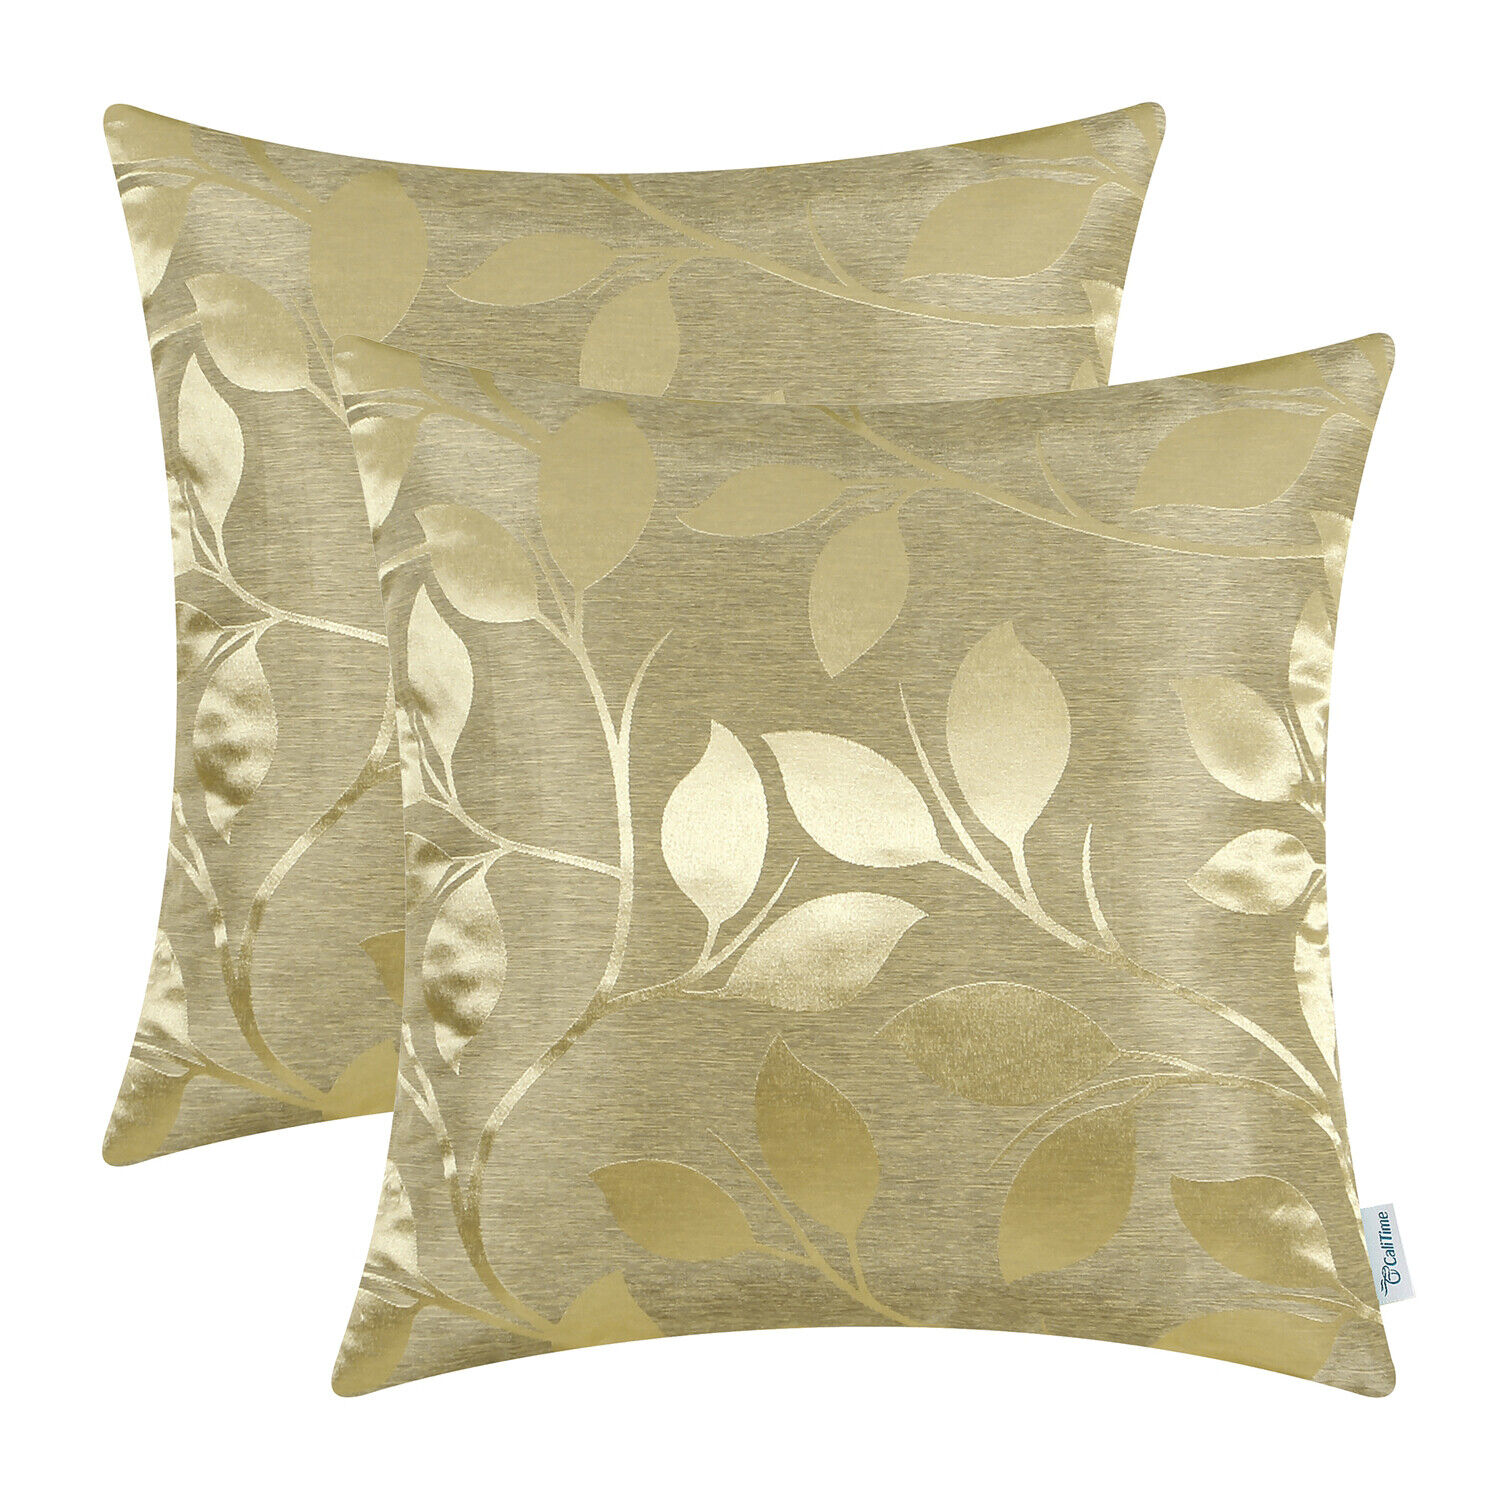 2Pcs CaliTime Gold Cushion Cover Pillow Shells Growing Leave